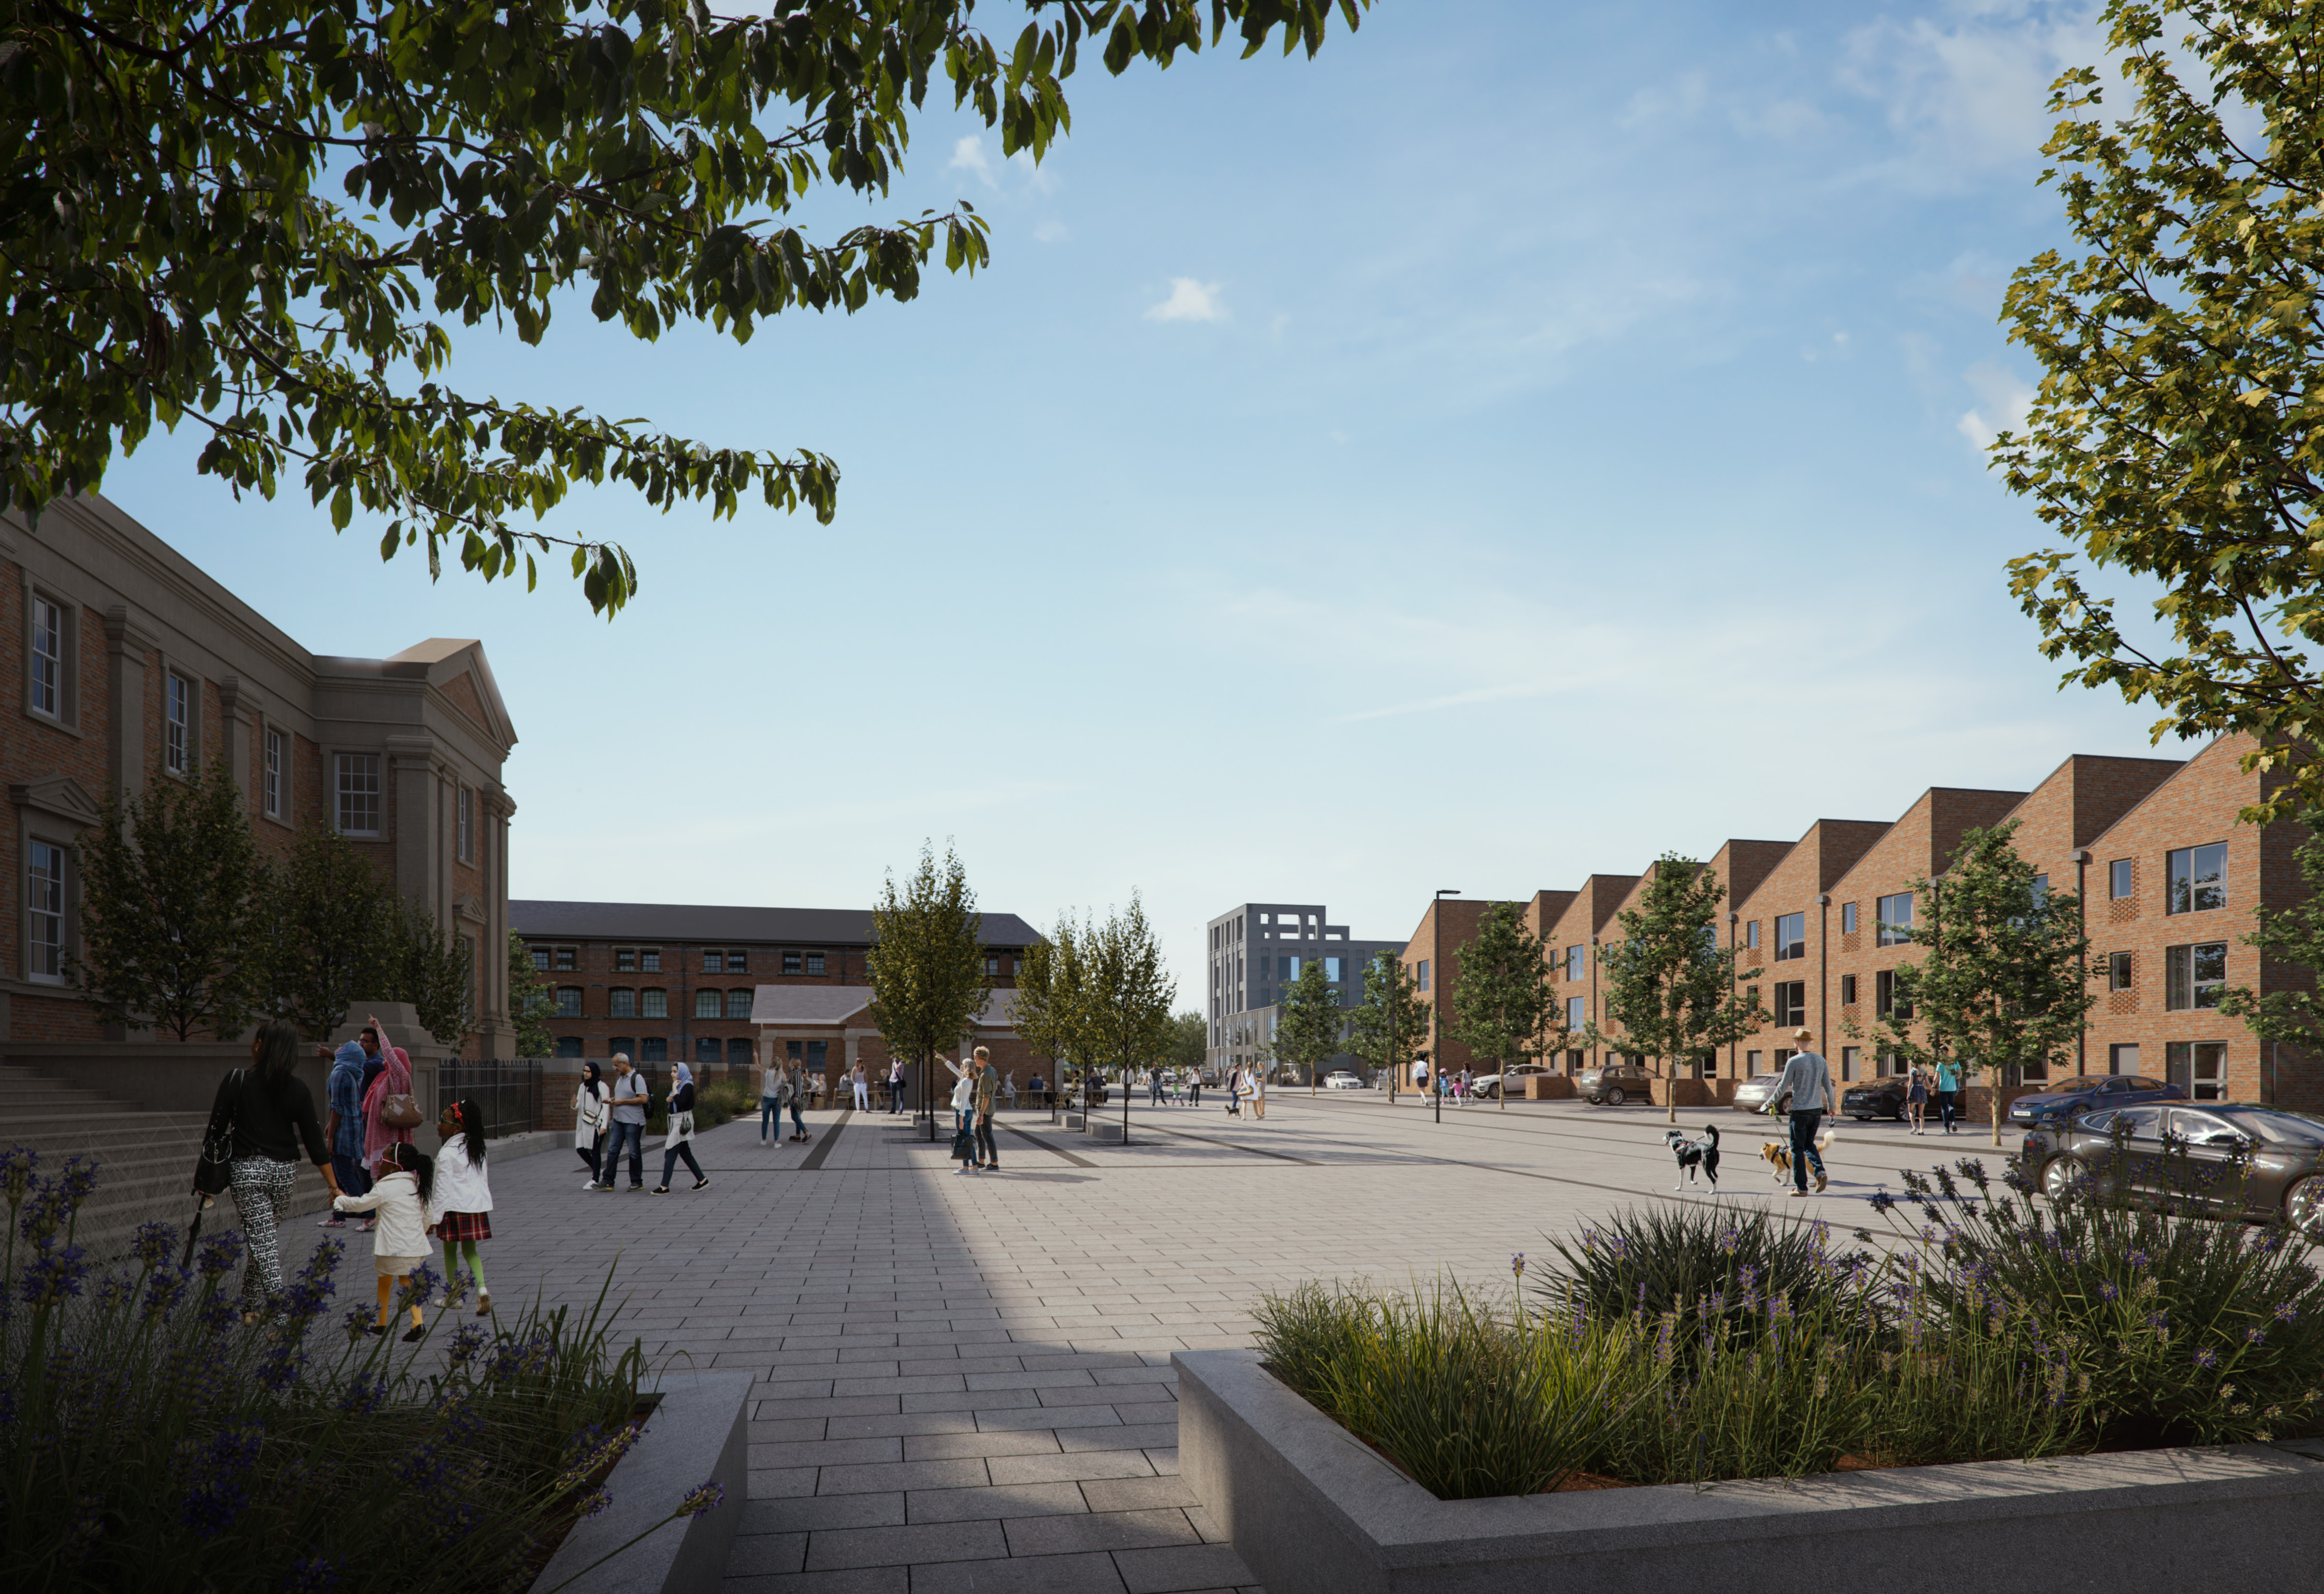 Major plans approved for former bus depot site